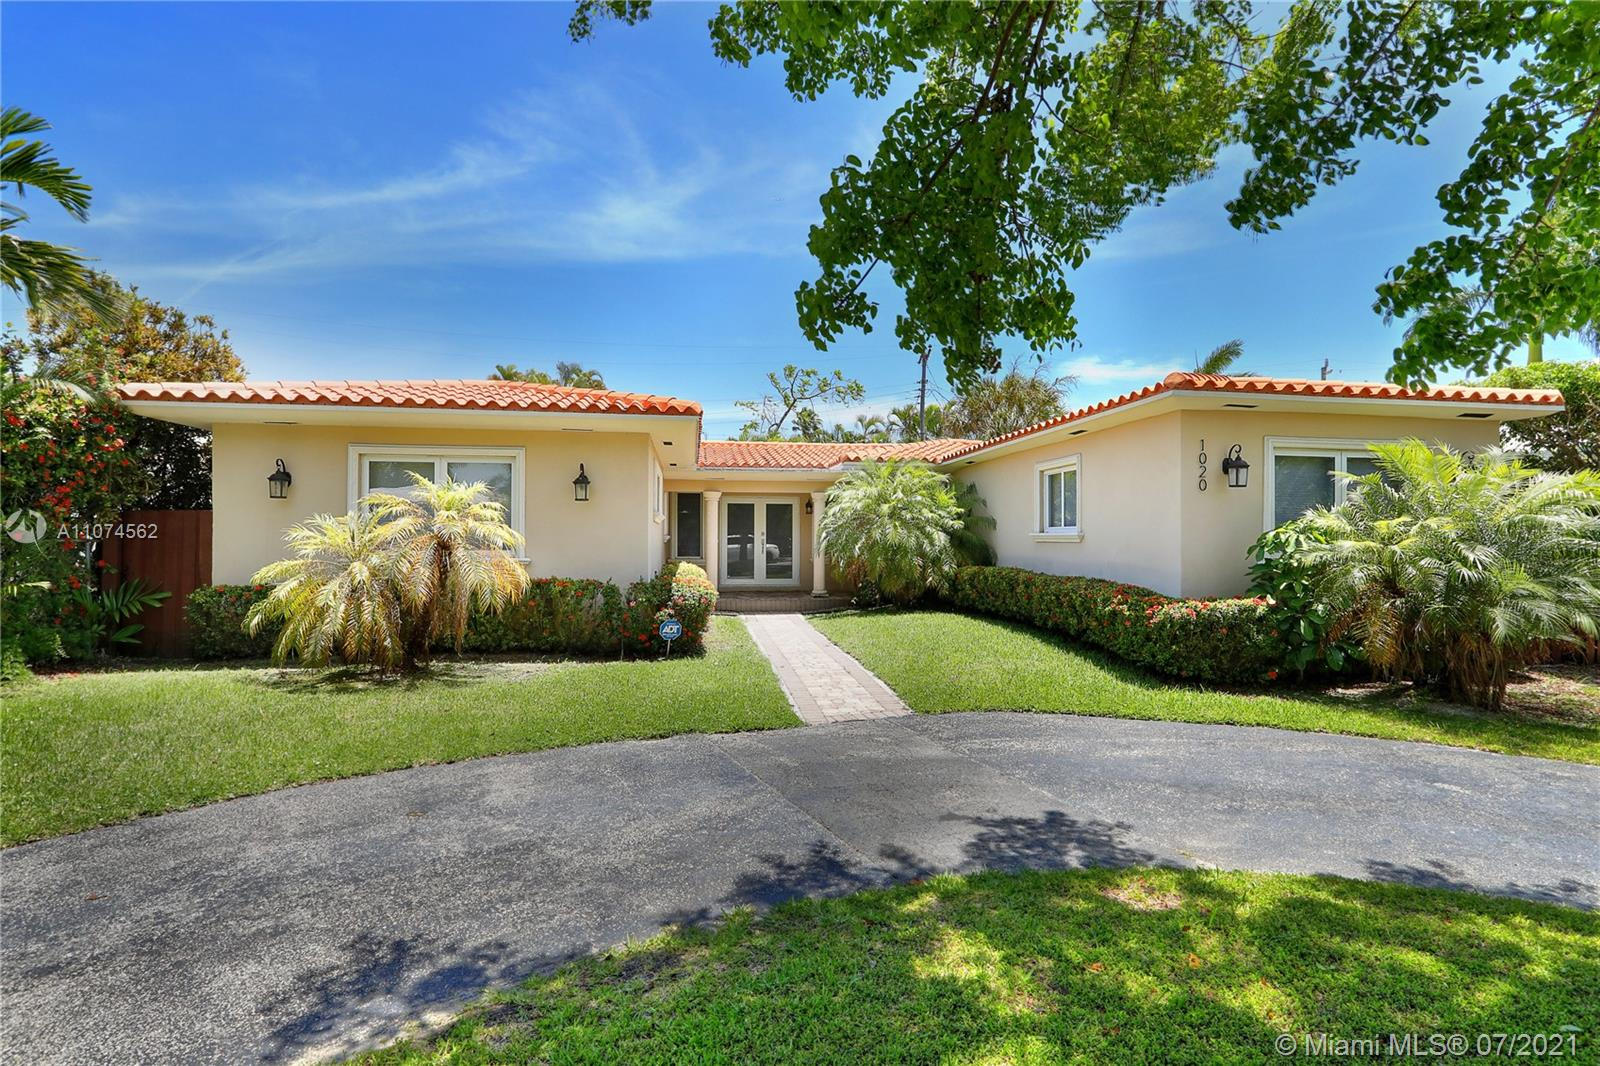 Located in gated Normandy Shores Island & near the Beach & Normandy Shore's Golf Club, this home has been  totally remodeled in the last 6 years! W/ over 2,400 sq. ft under air, this 3 BEDS/ 3 BATHS + DEN features a grand family room, private master suite that opens up to the tropical yard, Impact W + Ds, 6-year-old roof, updated plumbing + electrical & newer AC. W/ a state-of-the art kitchen and a private yard w/ room for a pool, this home is perfect for entertaining and to host a nice family gathering! Addtl. features incl. marble floors throughout, lots of natural light and tons of closet space. W/ walking distance to all the fantastic amenities the Island has to offer incl. the golf course, tennis & basketball courts, soccer field, kid's playground, gym & clubhouse w/ bar & restaurant.